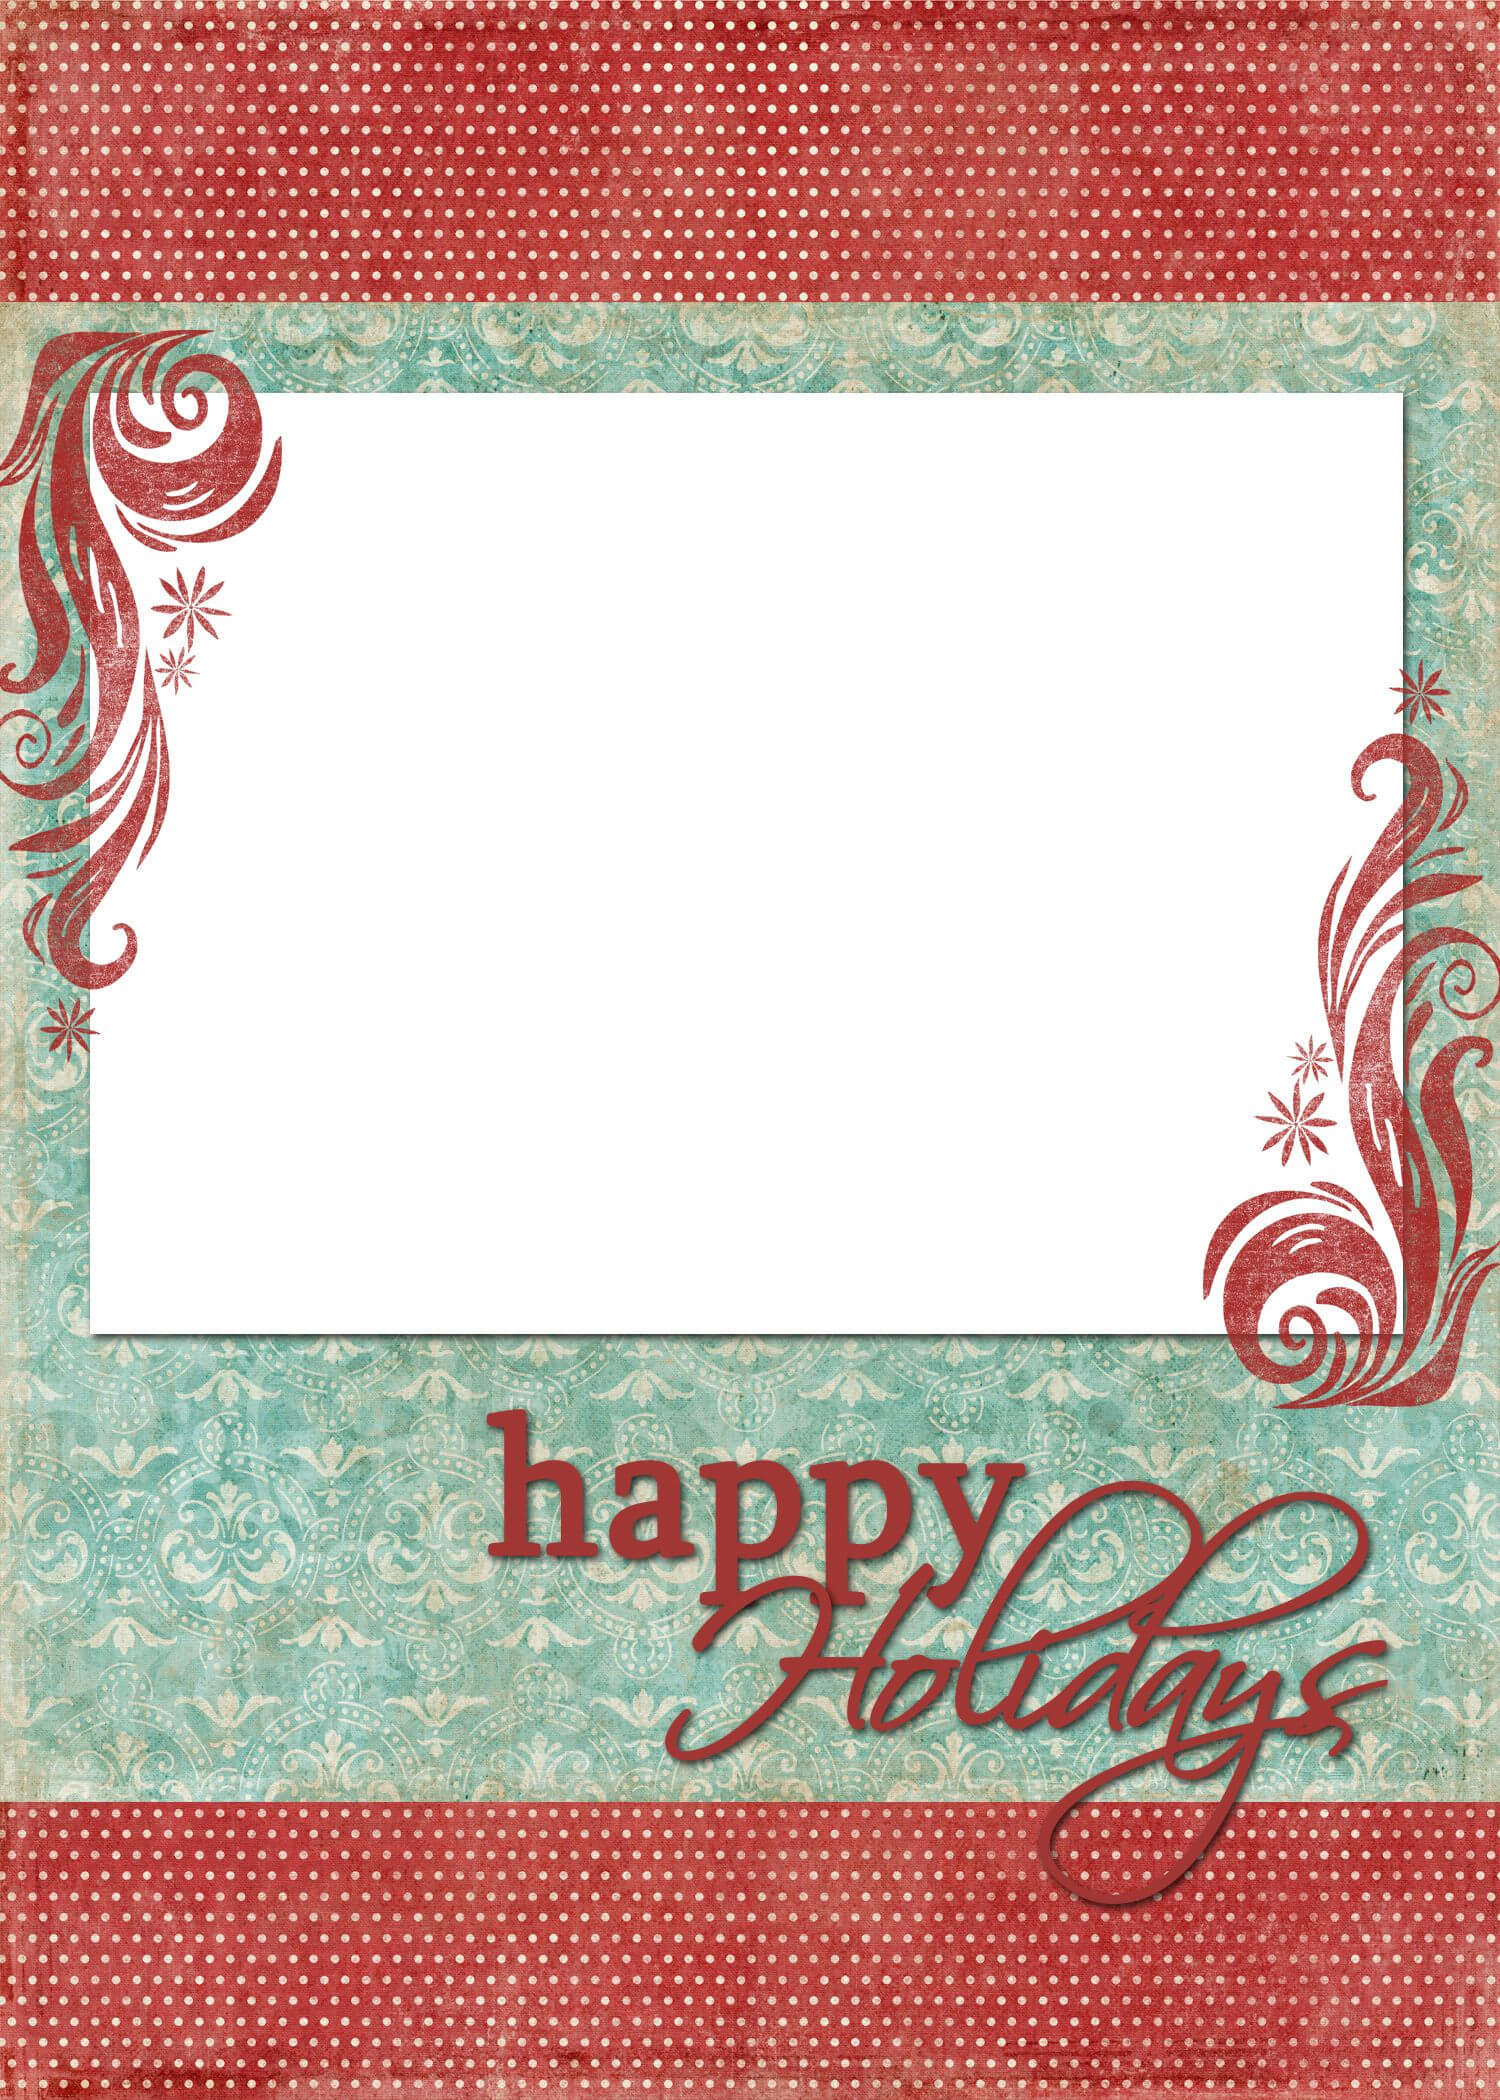 Happy Holidays Blue Red | Freebies :) | Christmas Card regarding Happy Holidays Card Template